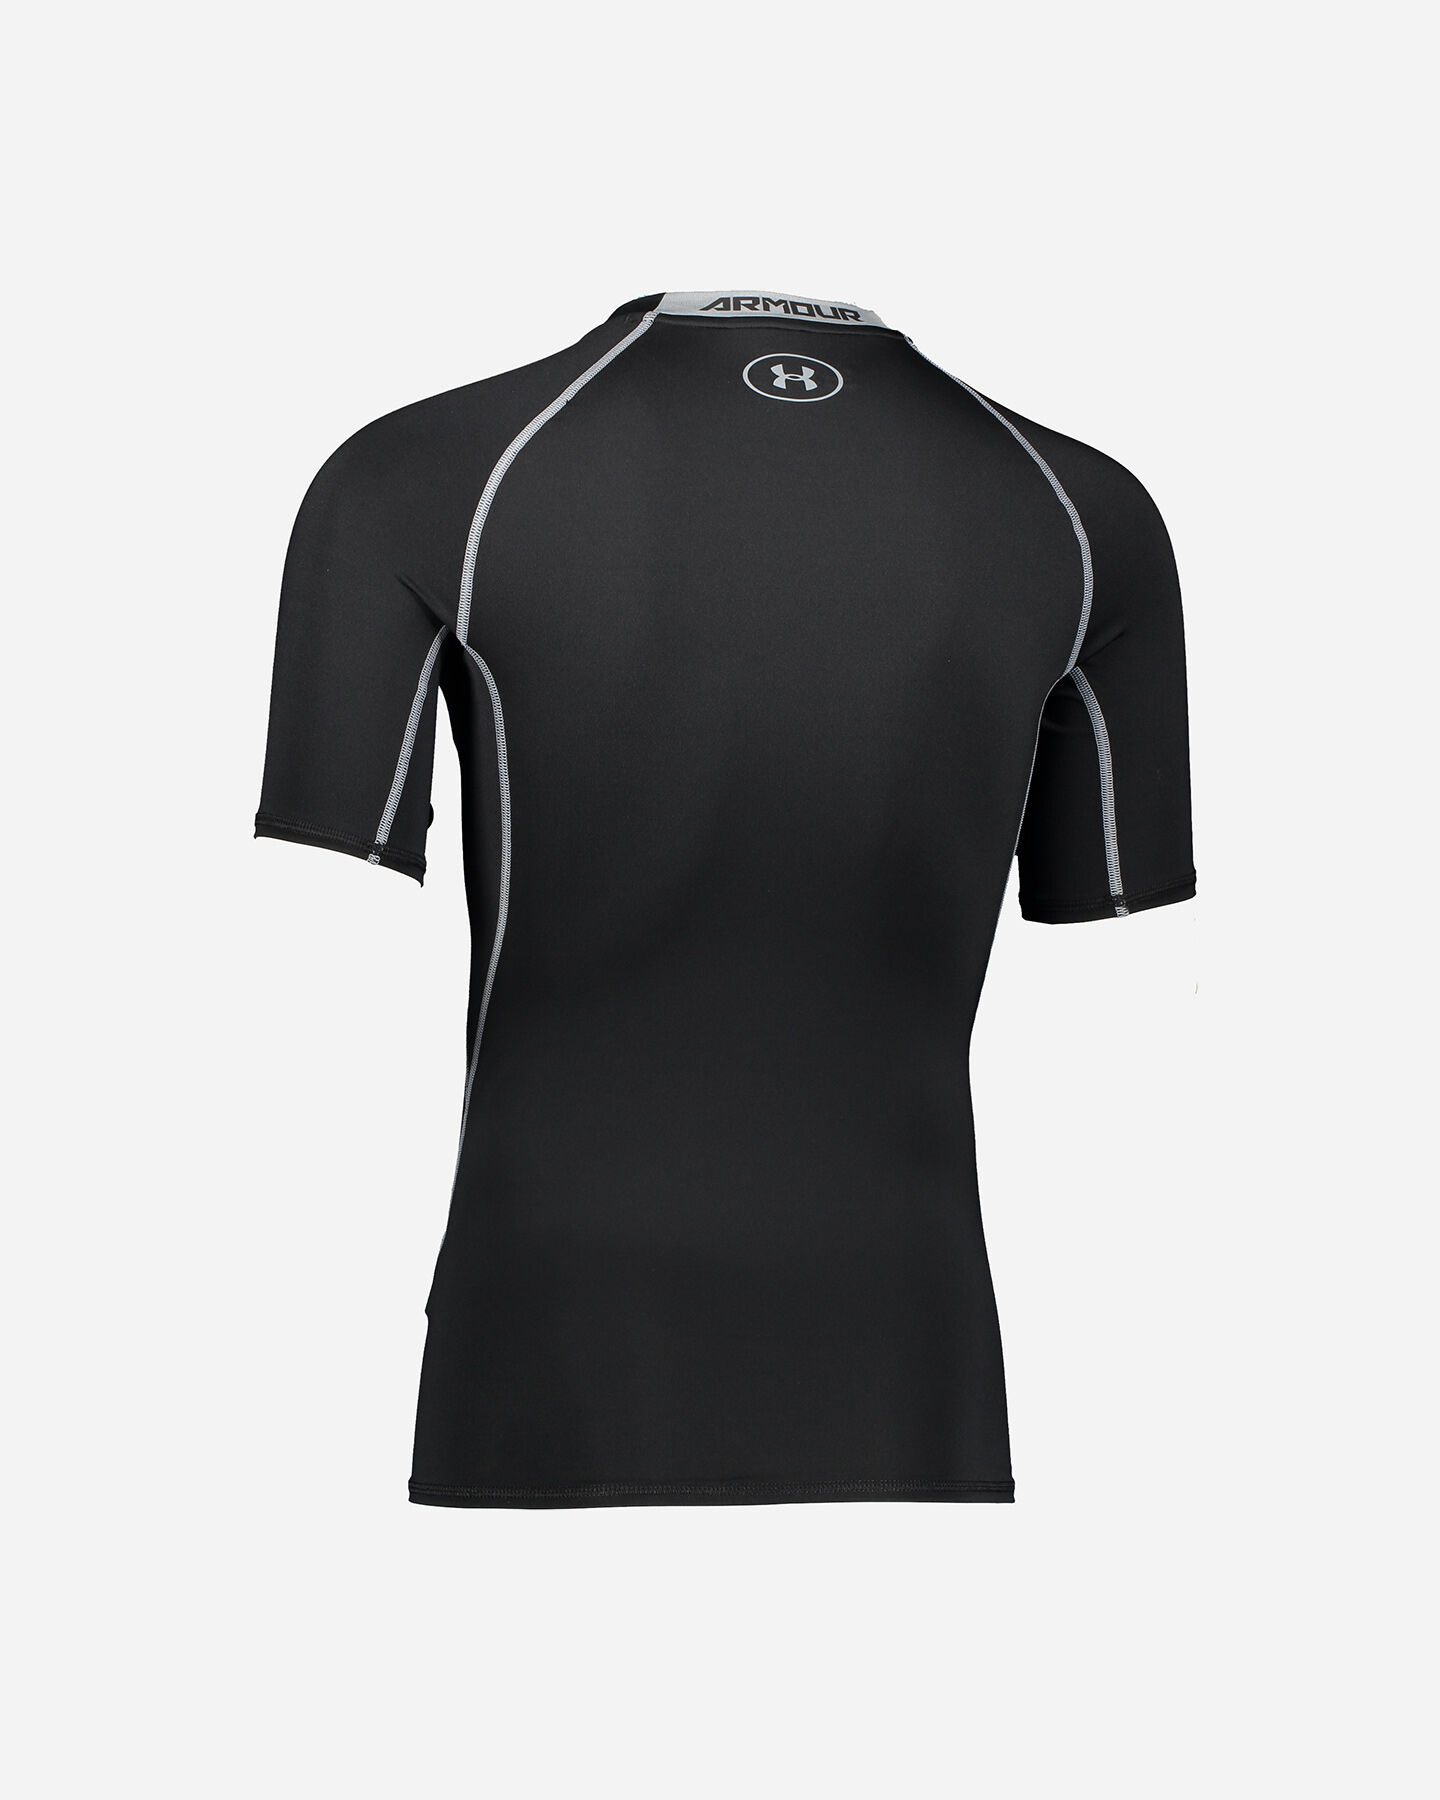 T-Shirt training UNDER ARMOUR COMPRESSION M S5031196 scatto 1